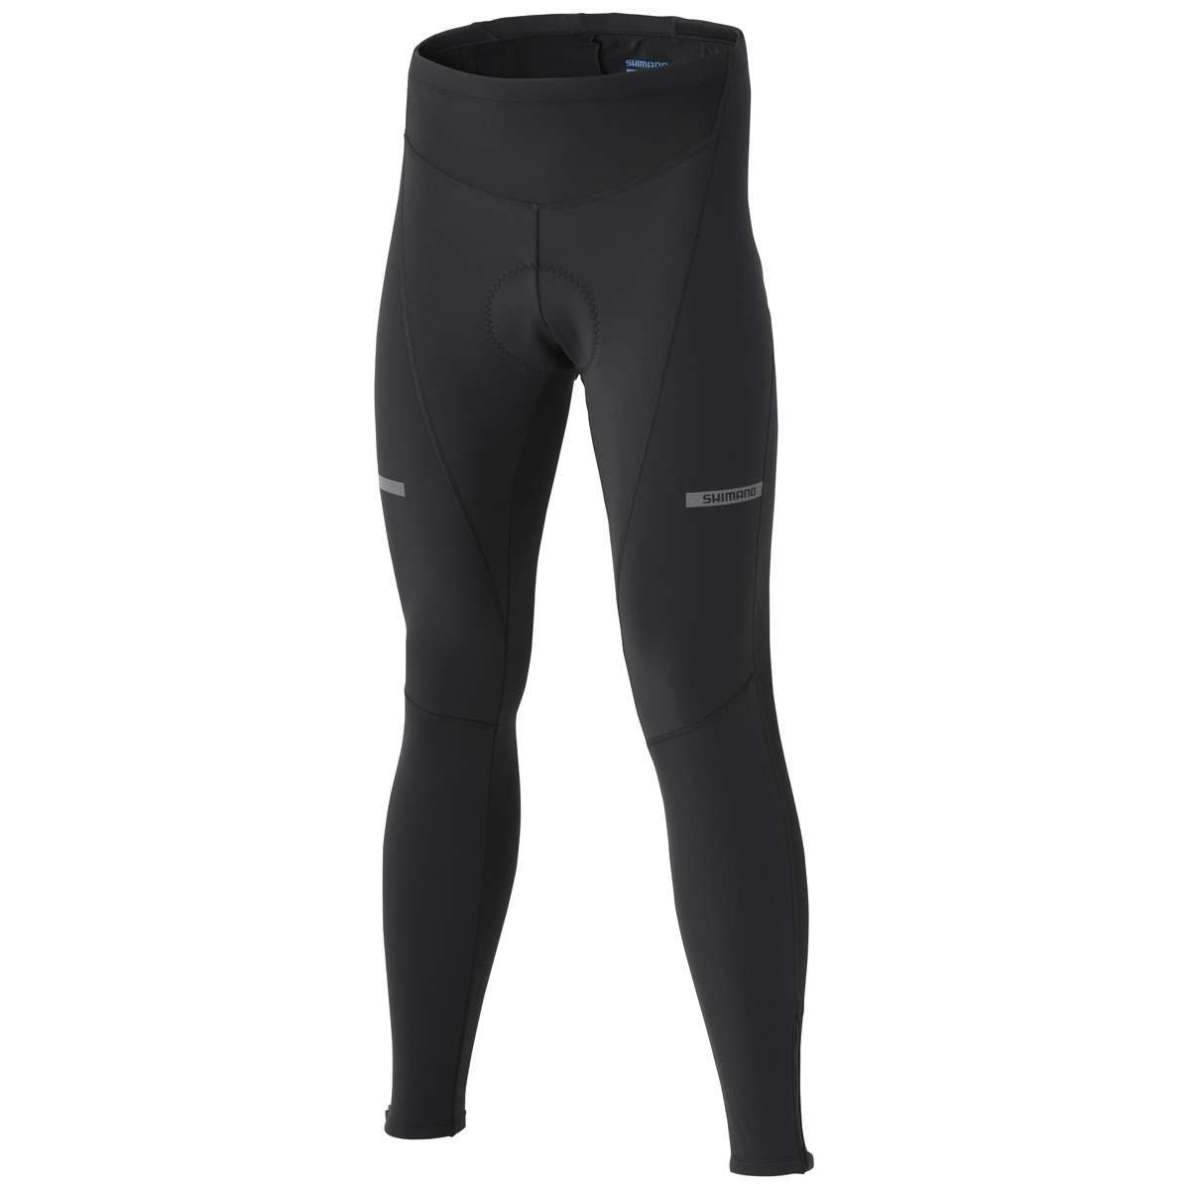 Shimano Wind Tights met chamois